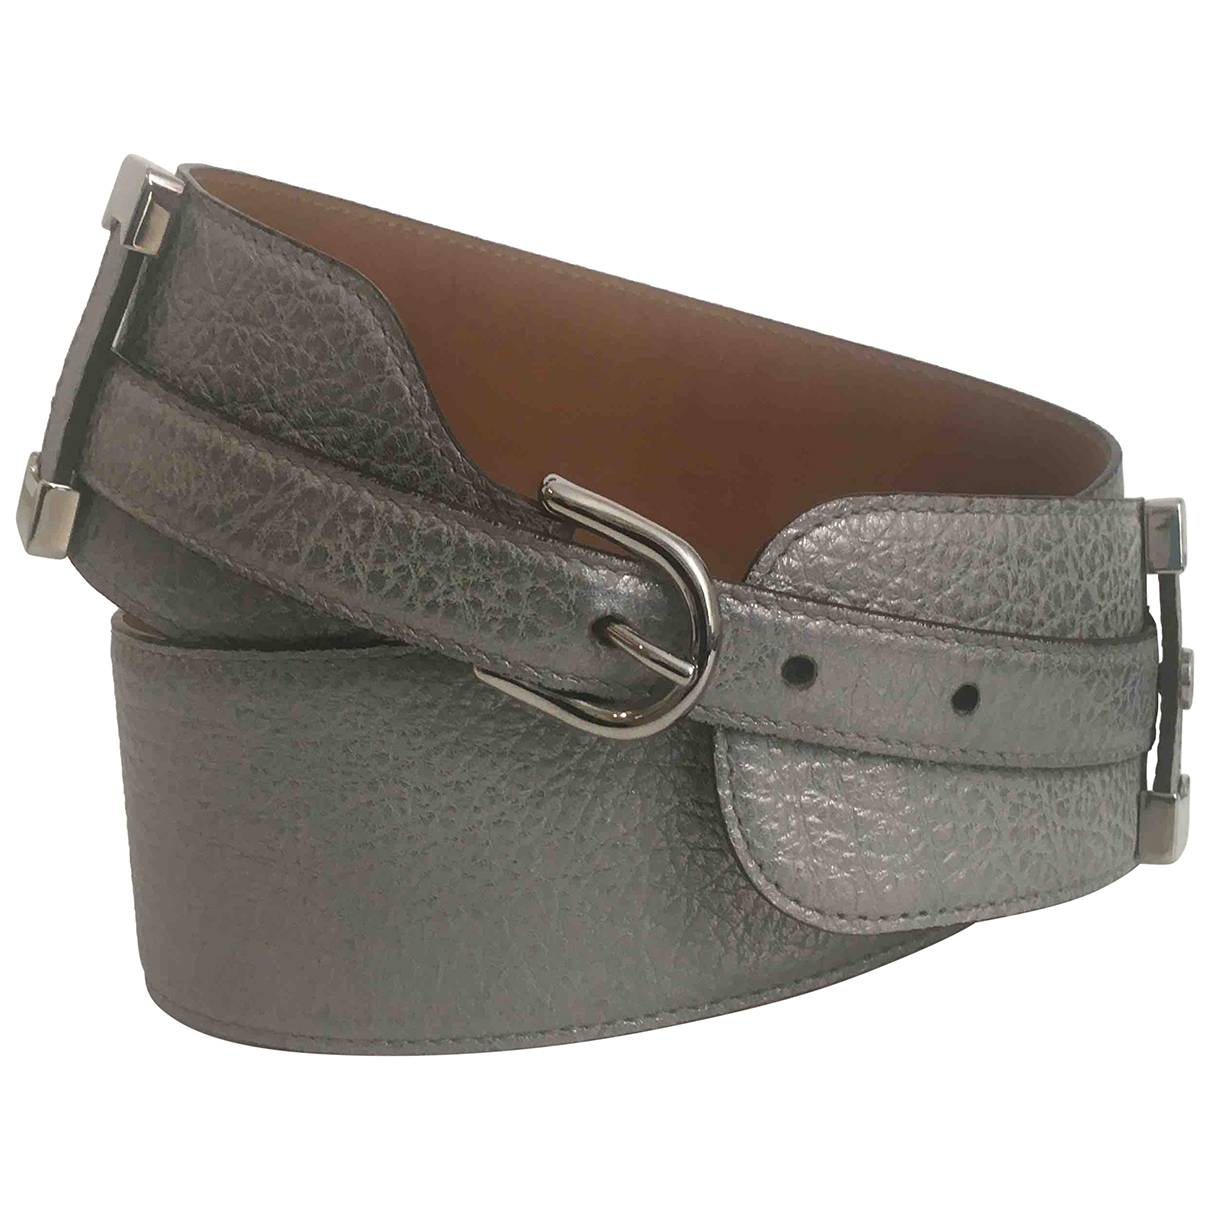 Roberto Cavalli \N Silver Leather belt for Women 90 cm